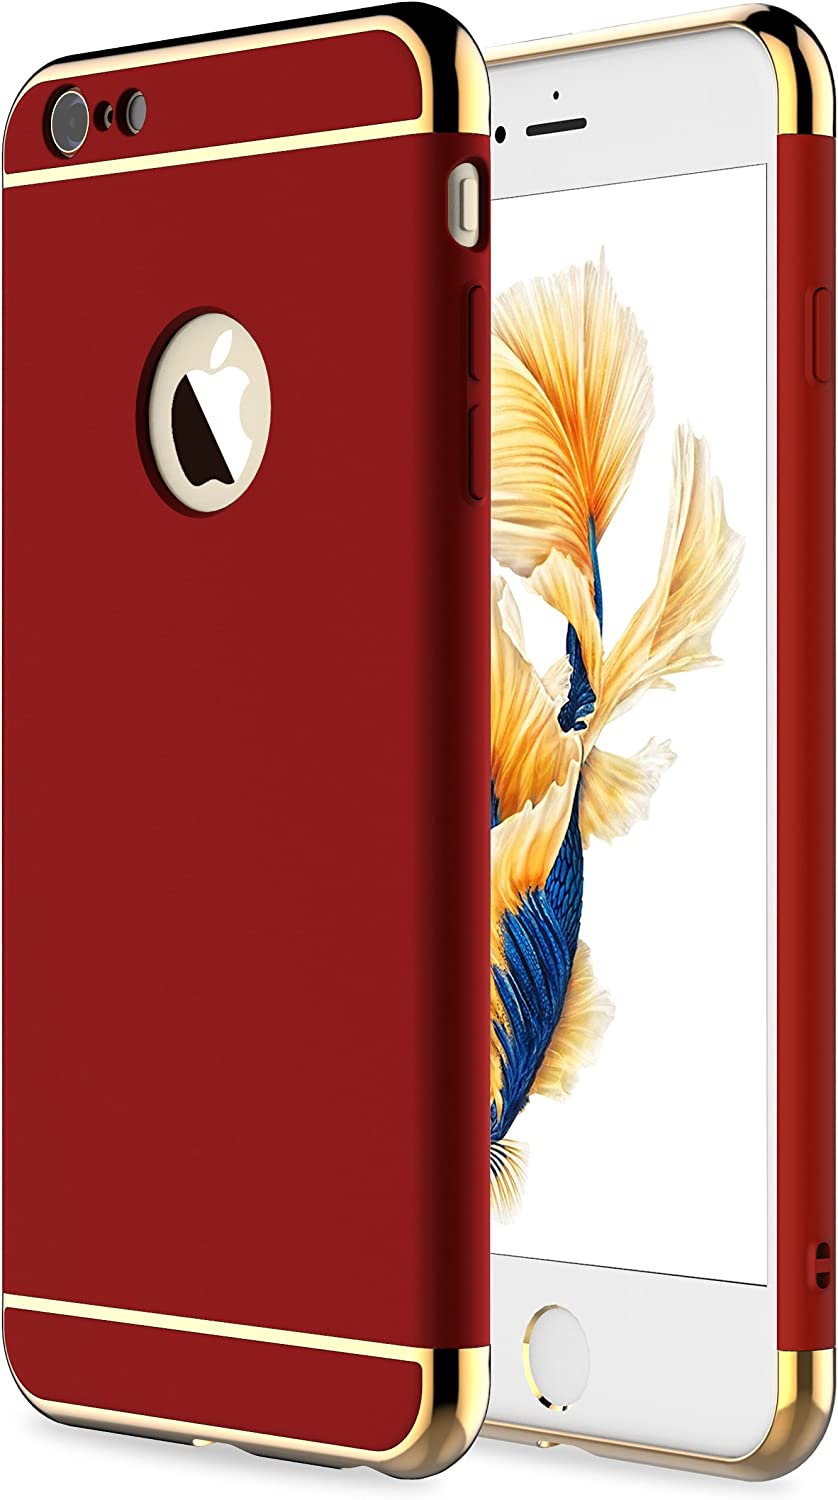 RORSOU iPhone 6s Plus Case,iPhone 6 Plus Case, 3 in 1 Ultra Thin and Slim Hard Case Coated Non Slip Matte Surface with Electroplate Frame for Apple iPhone 6/6s Plus(5.5') - Red and Gold